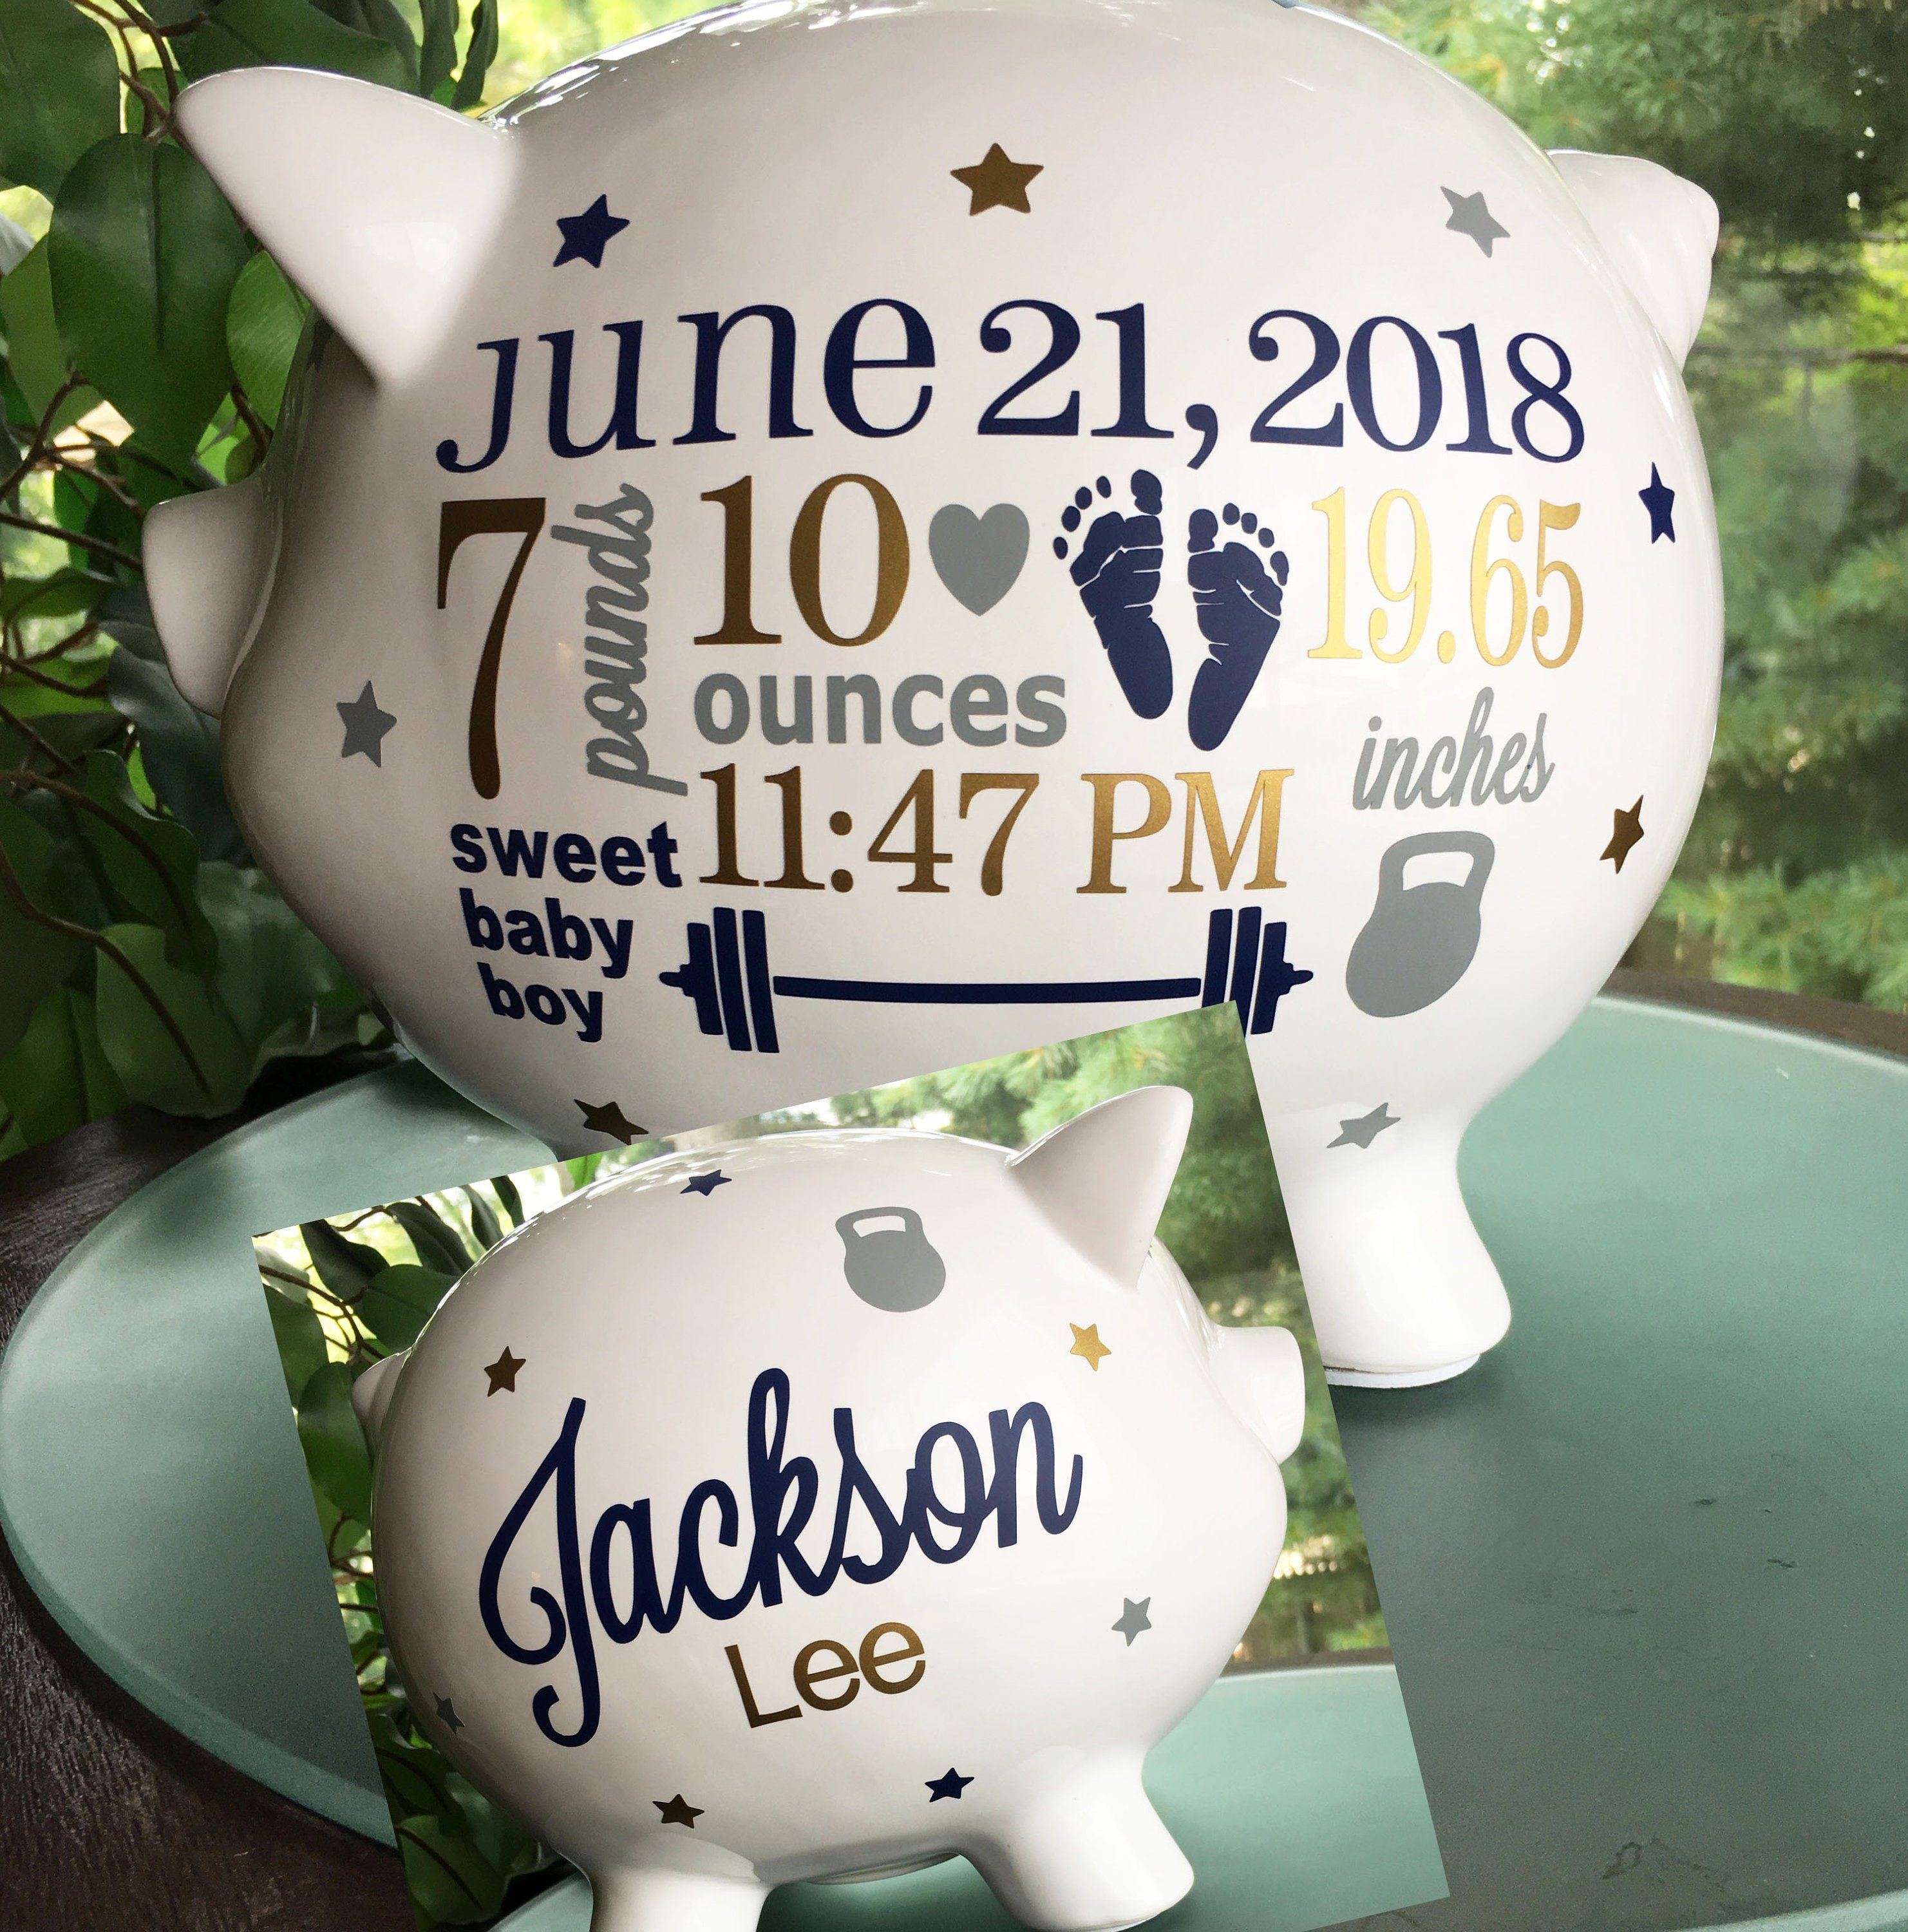 Personalized Piggy Bank Barbell Kettle Bell Baby Weightlifting Baby Baby Boy Custom Piggy Bank Baby Boy Sports Gift Piggy Bank Personalized Piggy Bank Piggy Bank Unique Baby Gifts